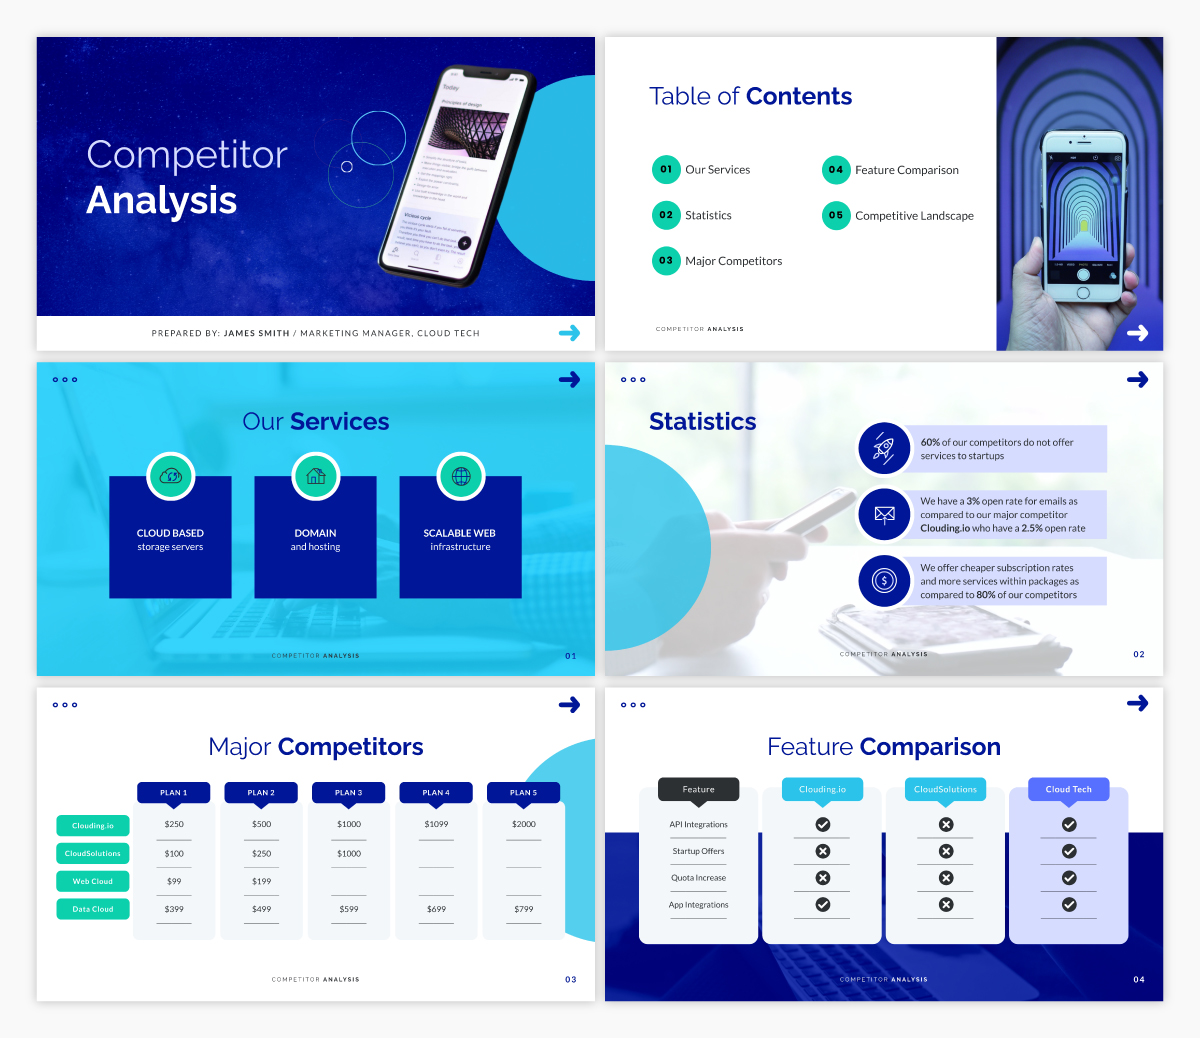 A competitor analysis presentation template available in Visme.